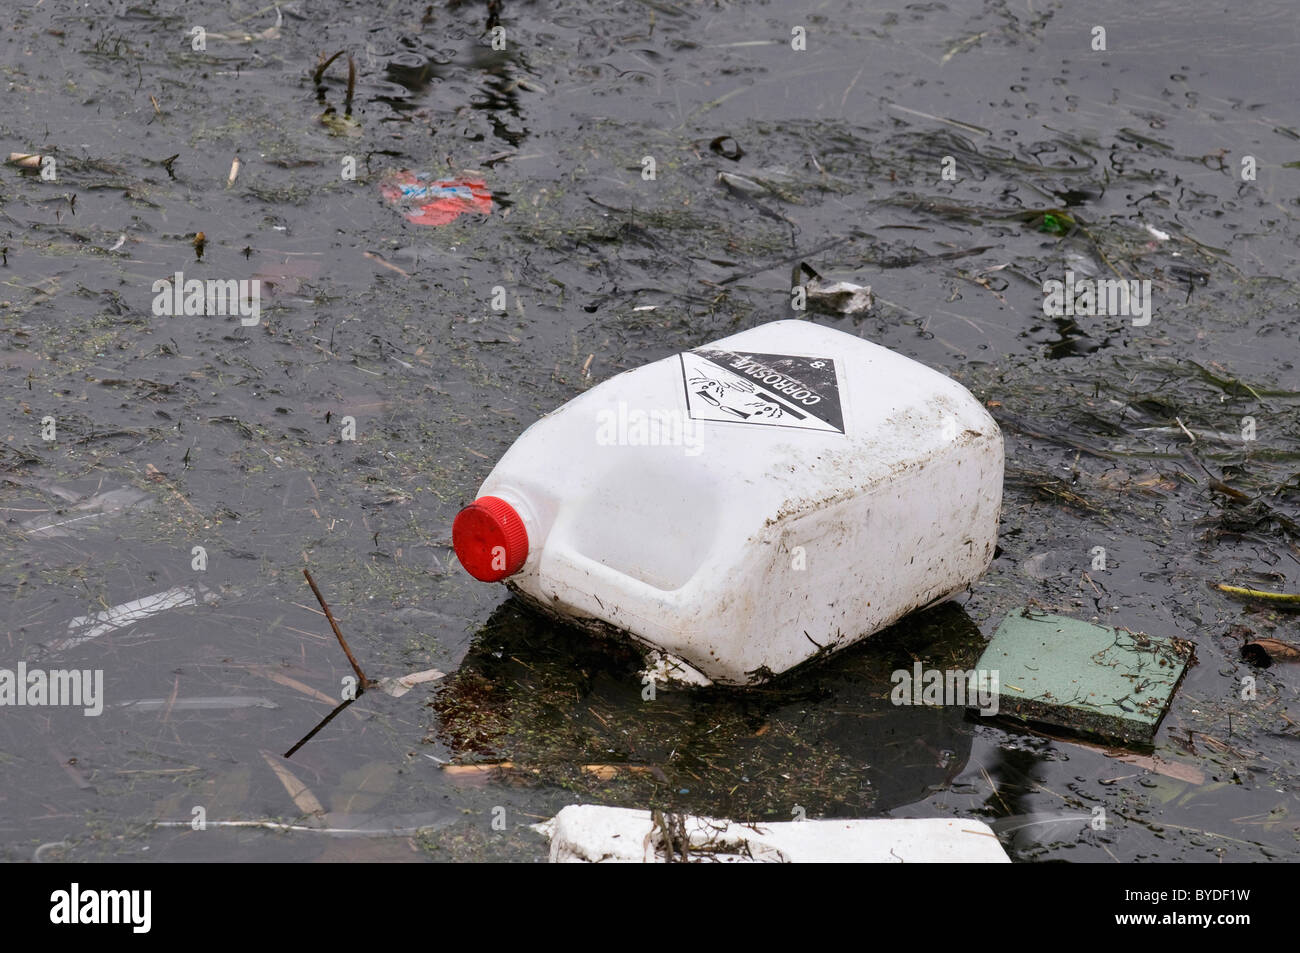 Dirty water, old canister with corrosive substances floating on dirty film - Stock Image